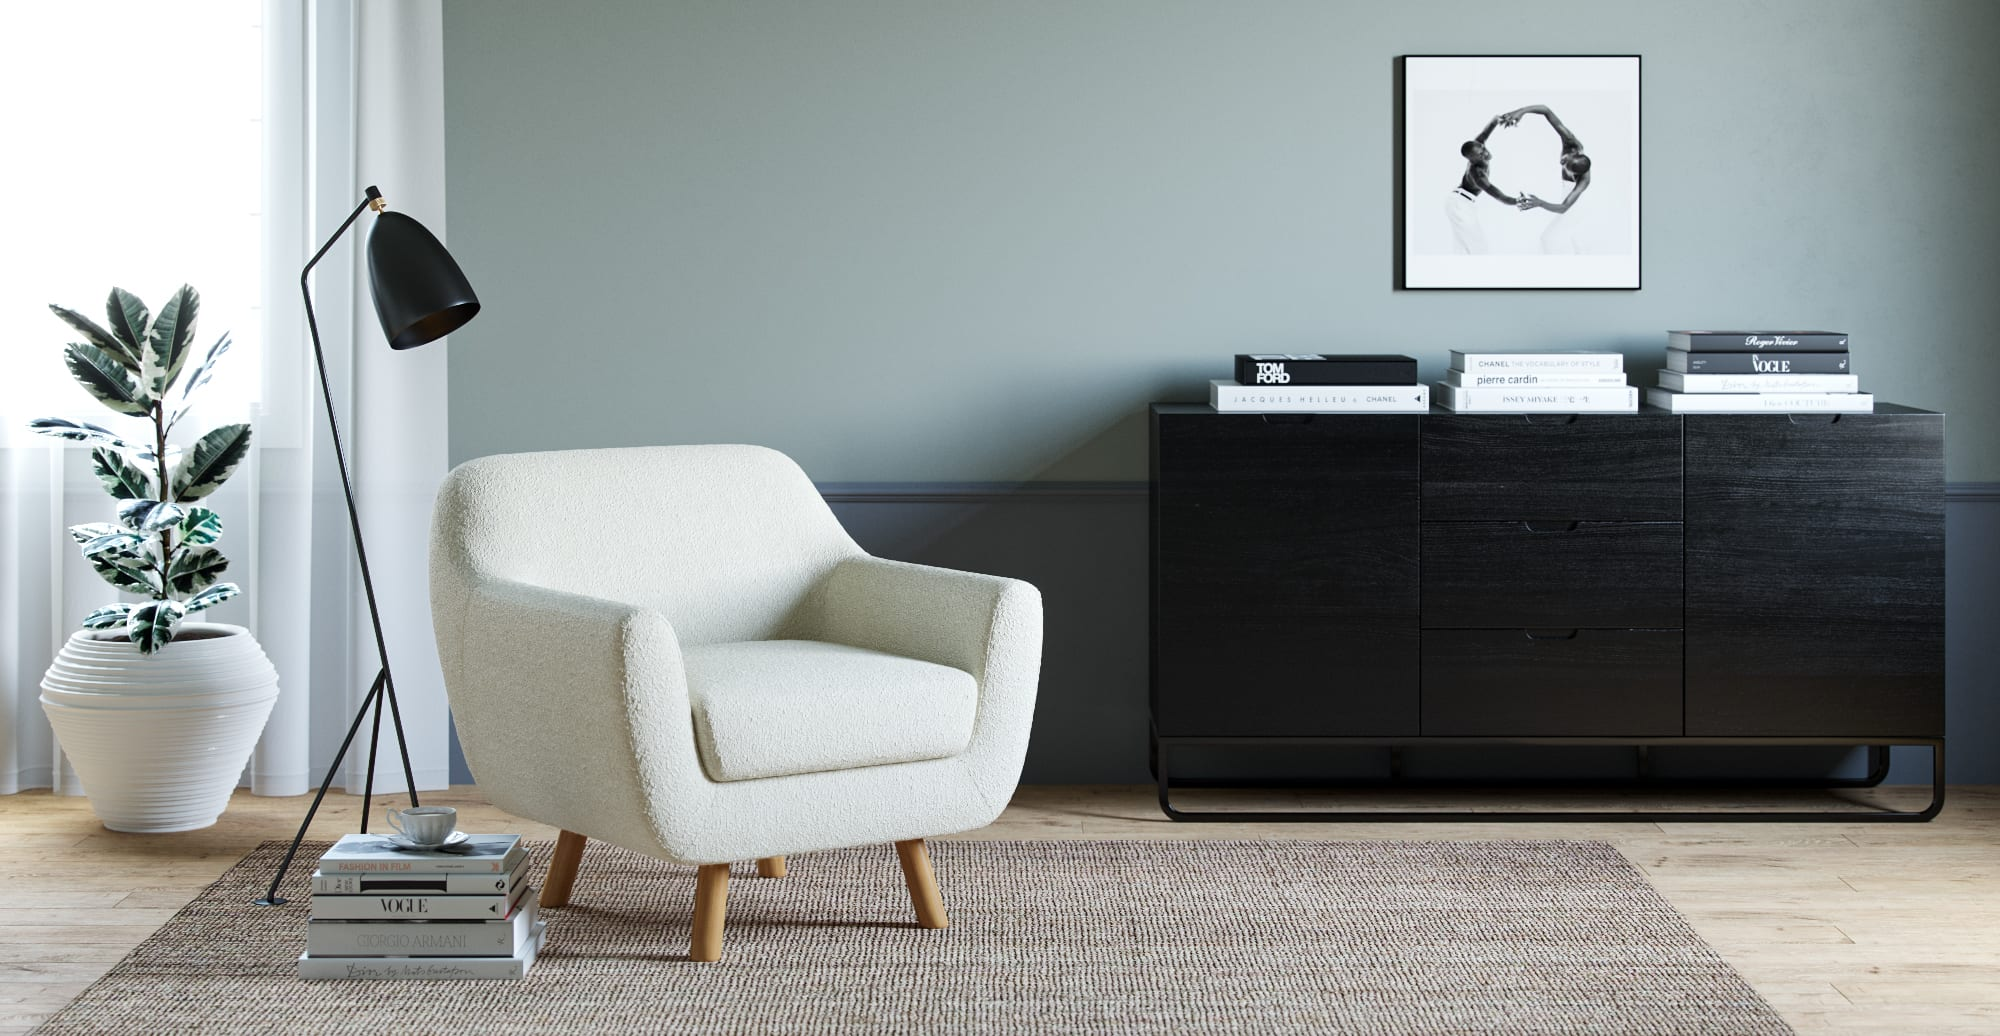 Tate Armchair in Dolly White Pavilion Boucle - Nursing chairs & rocking chairs